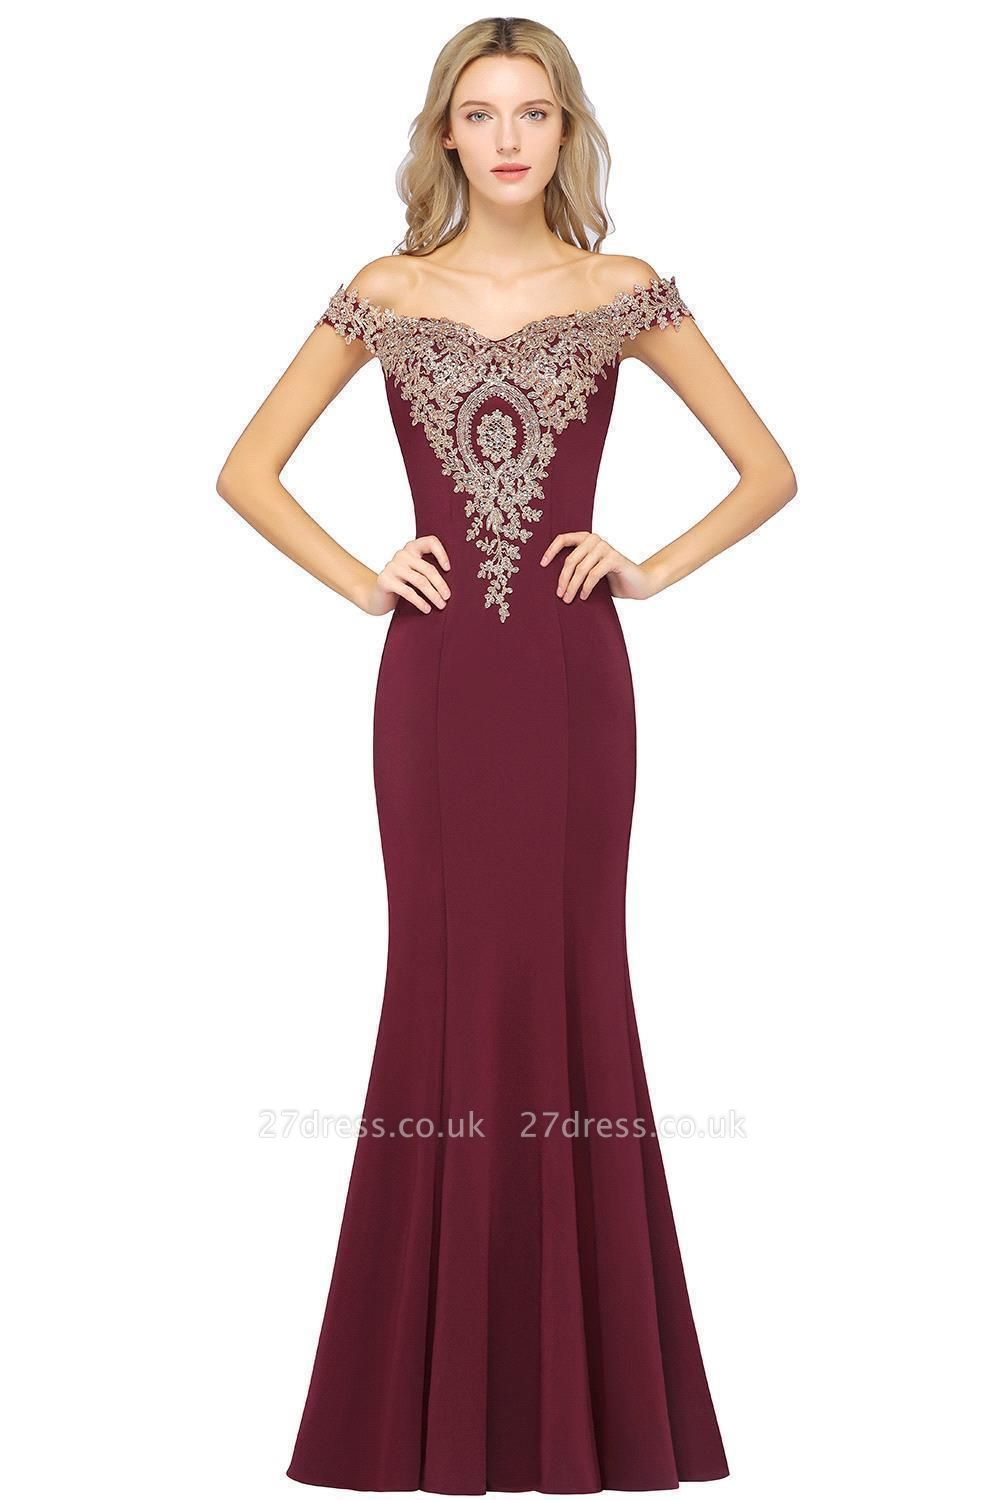 Simple Off-the-shoulder Burgundy Formal Dress with Lace Appliques